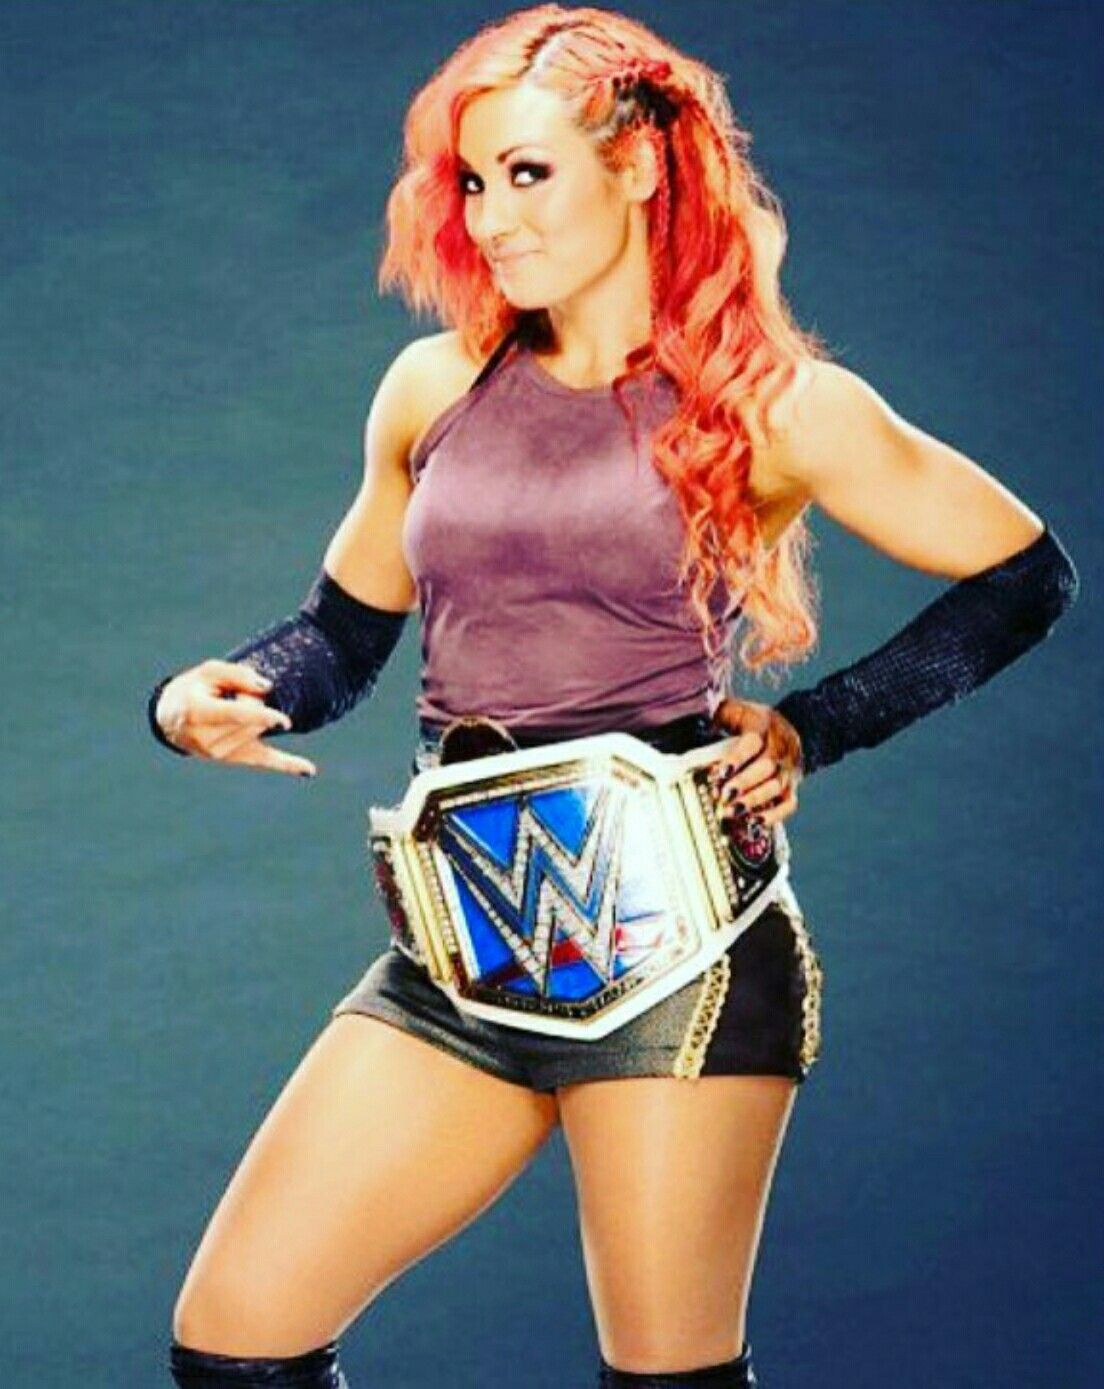 lynch women Rebecca quin (january 30, 1987) is an irish professional wrestler currently signed to wwe, performing on the smackdown brand where she wrestles under the ring name becky lynch.